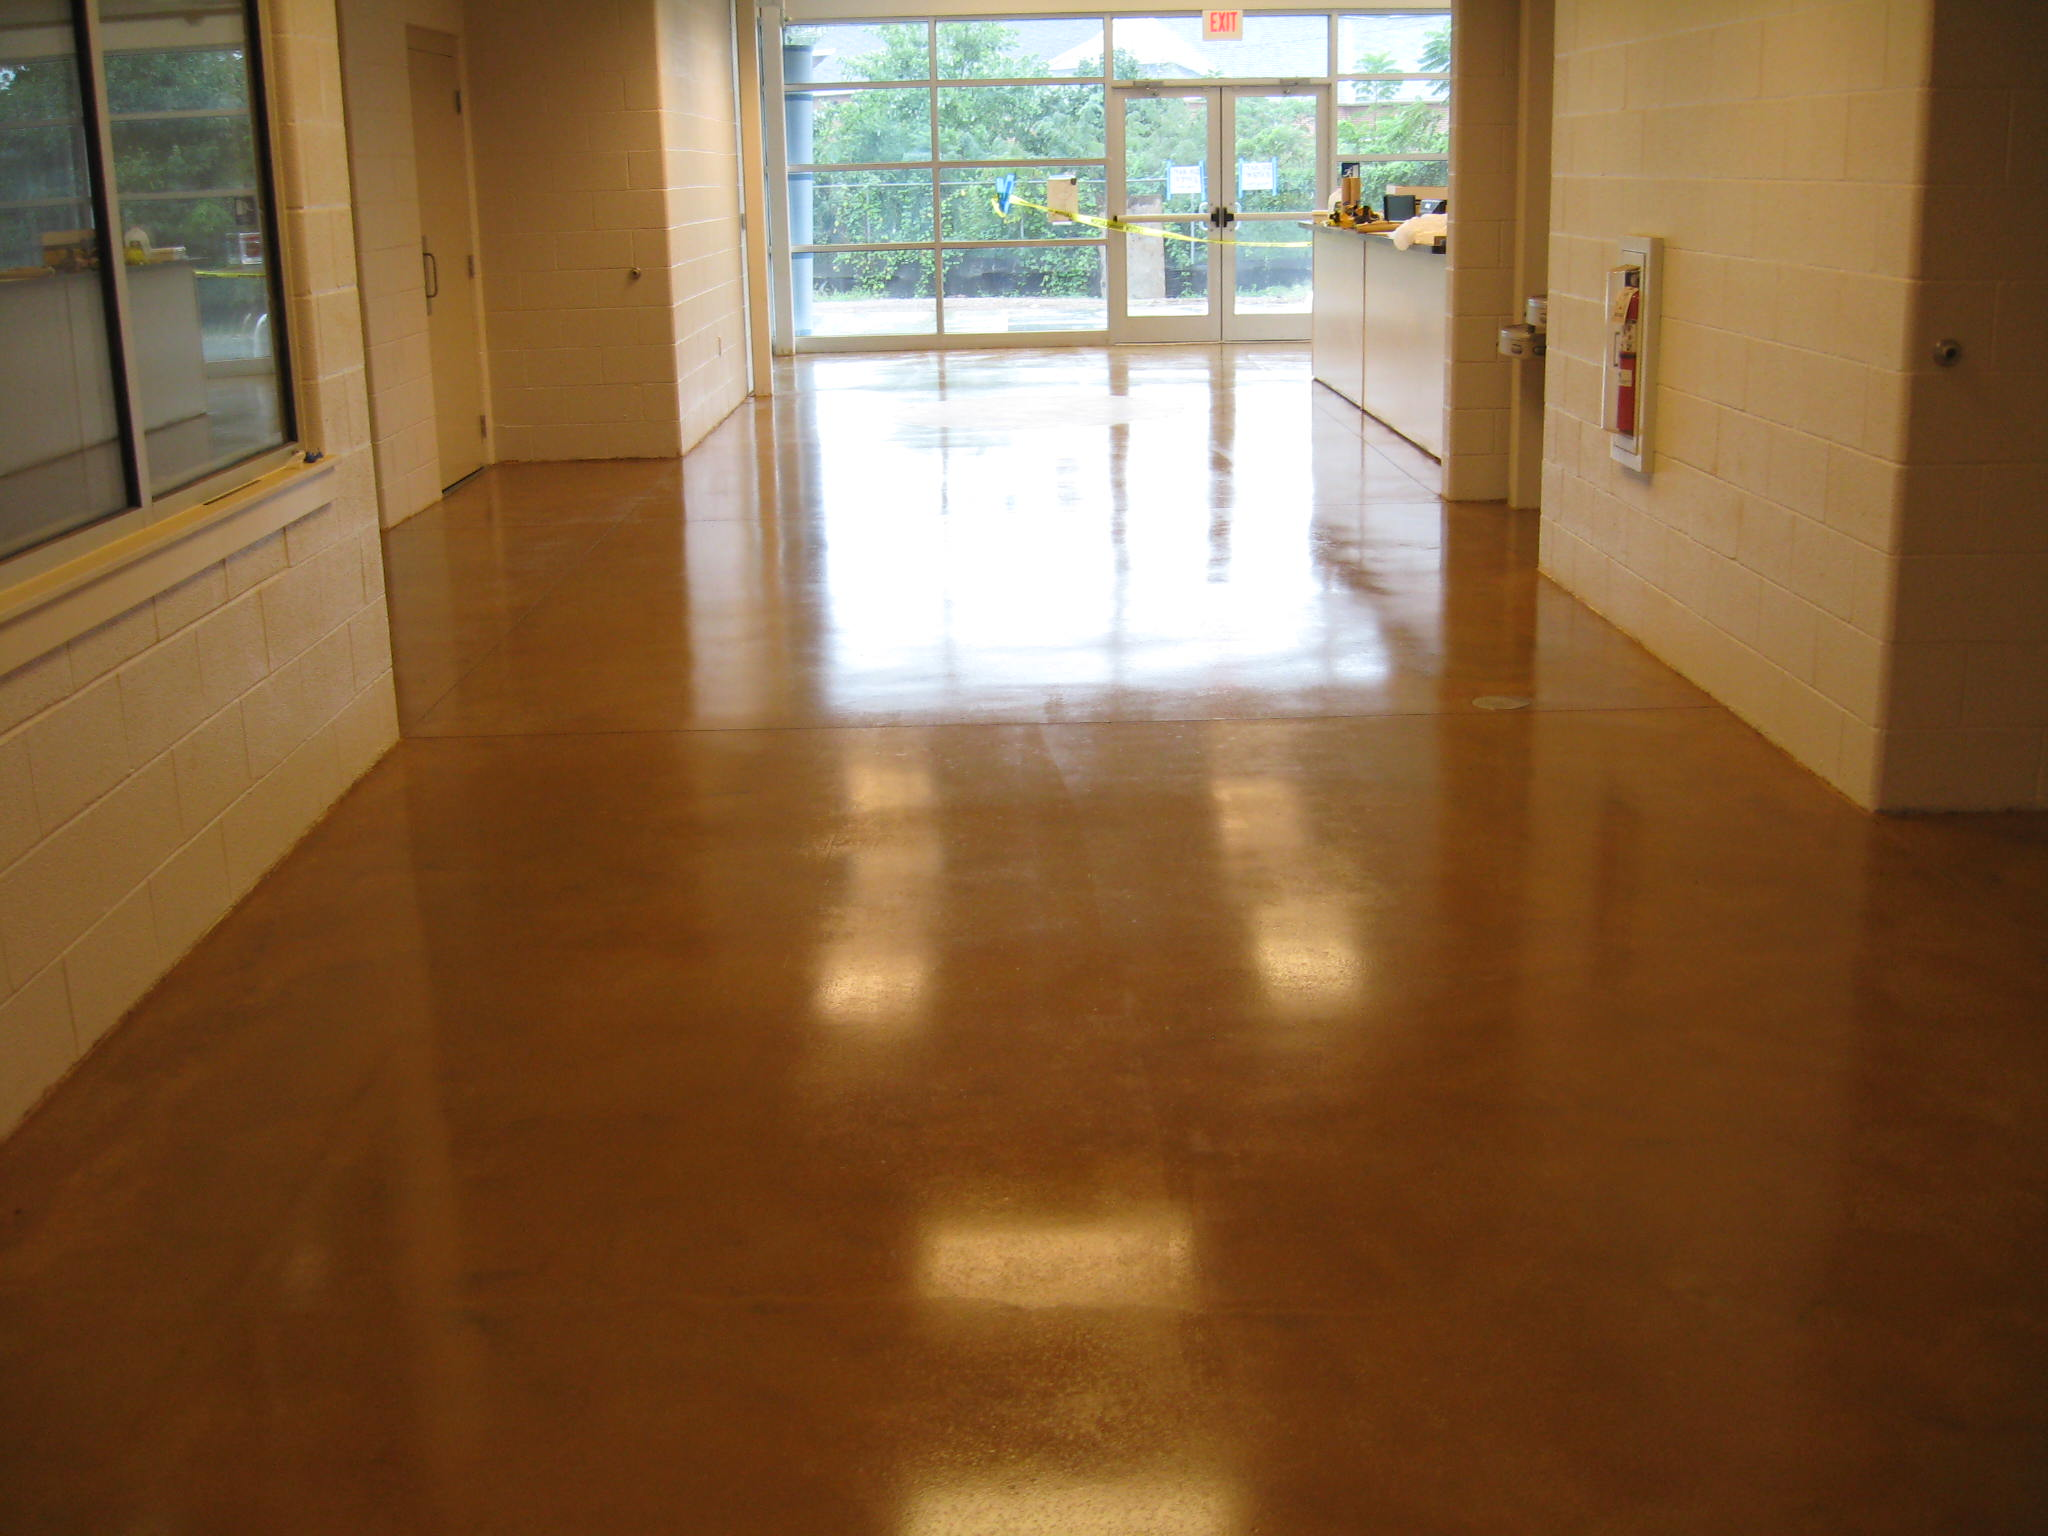 Stained Concrete Floor in Commercial Building.